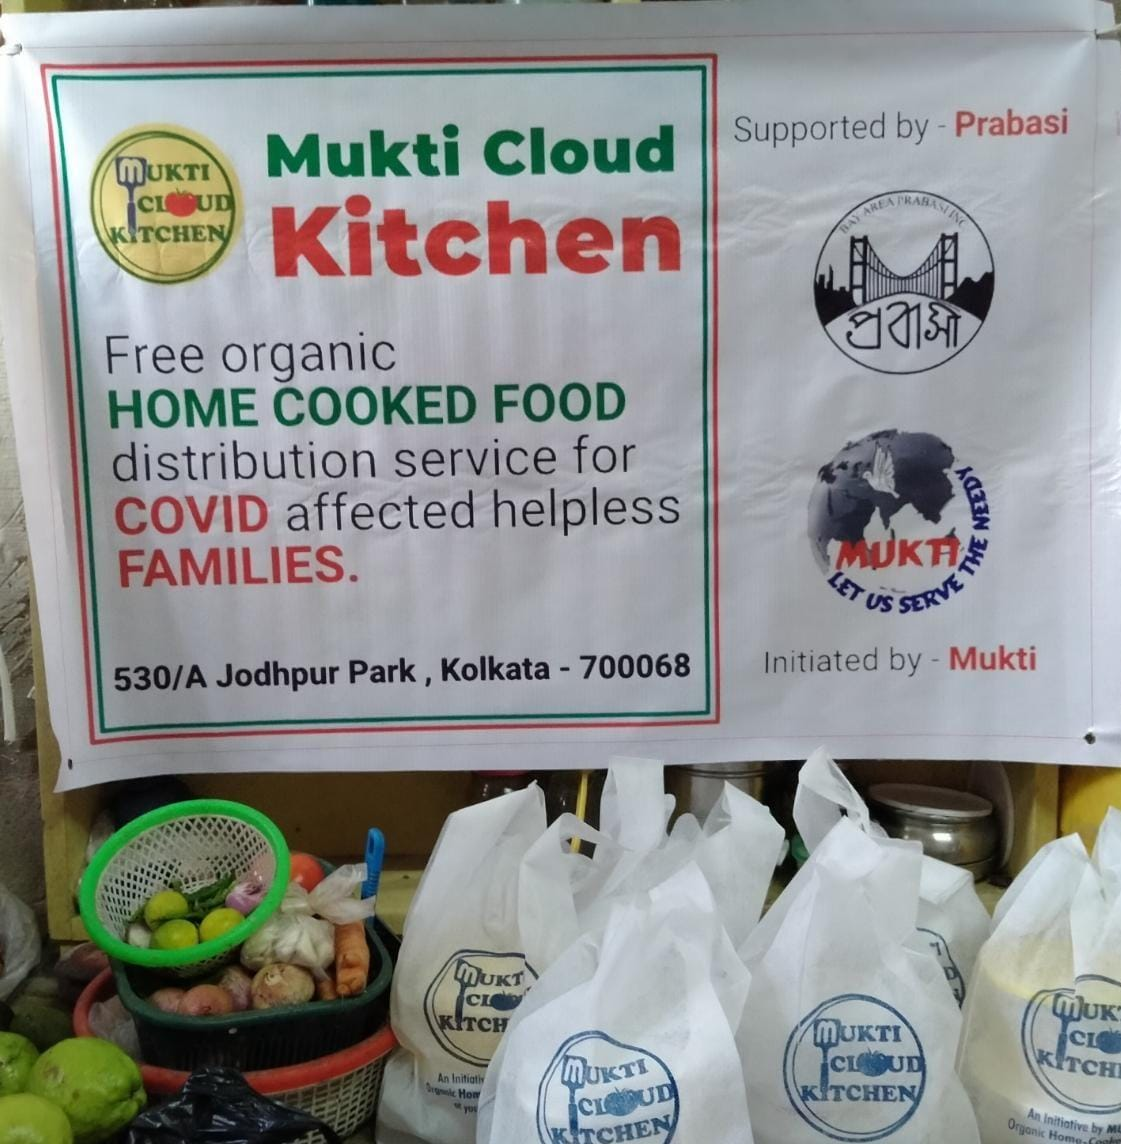 Mukti Cloud Kitchen Feeding Isolated Covid Patients